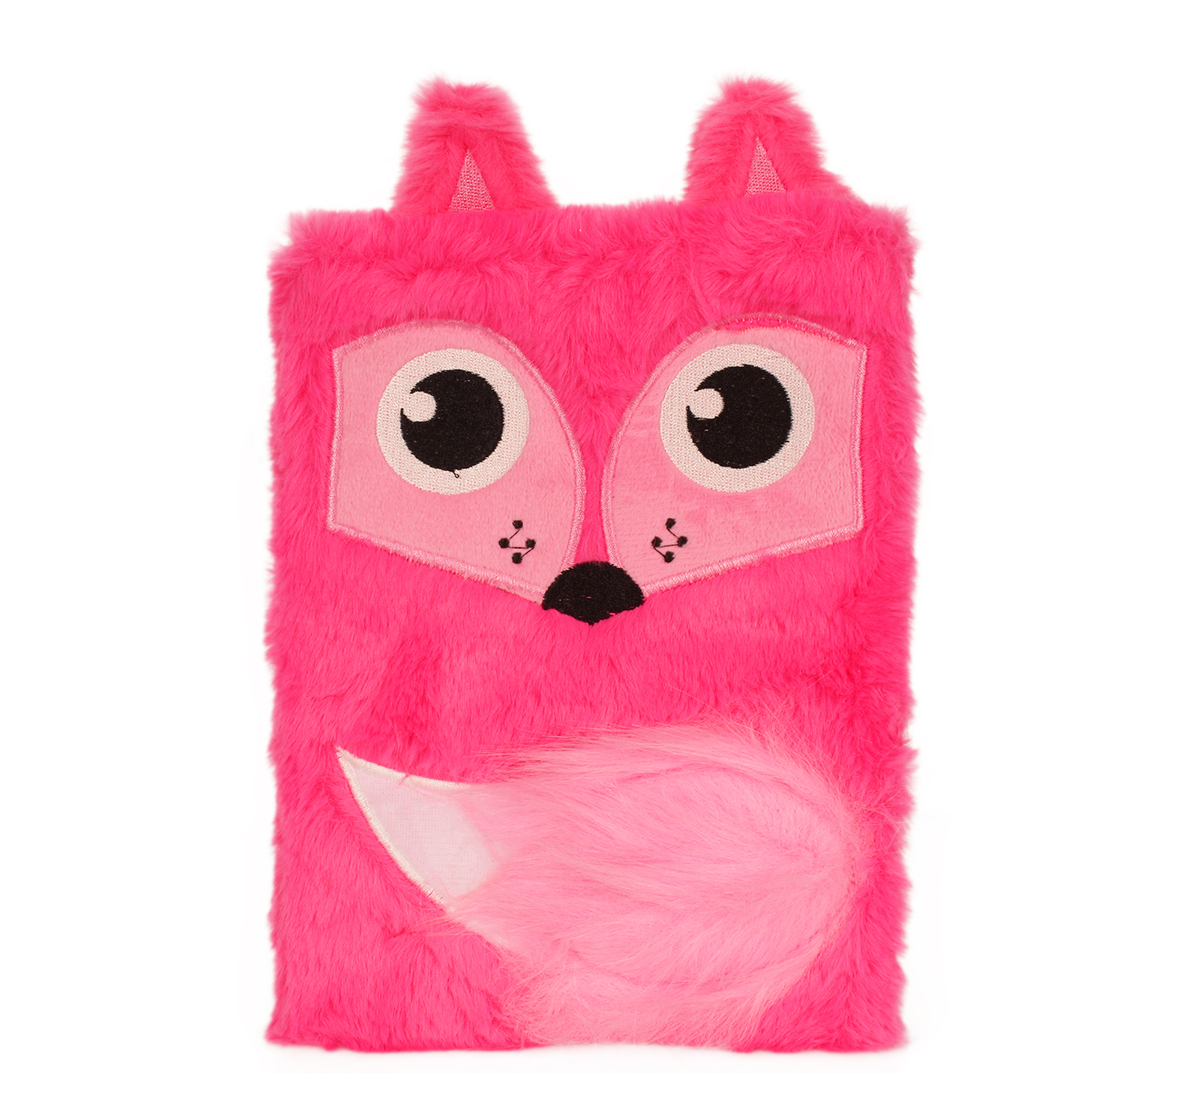 Mirada | Mirada  Whimsical Plush Fox Notebook - Study & Desk Accessories for Kids age 3Y+ (Pink)